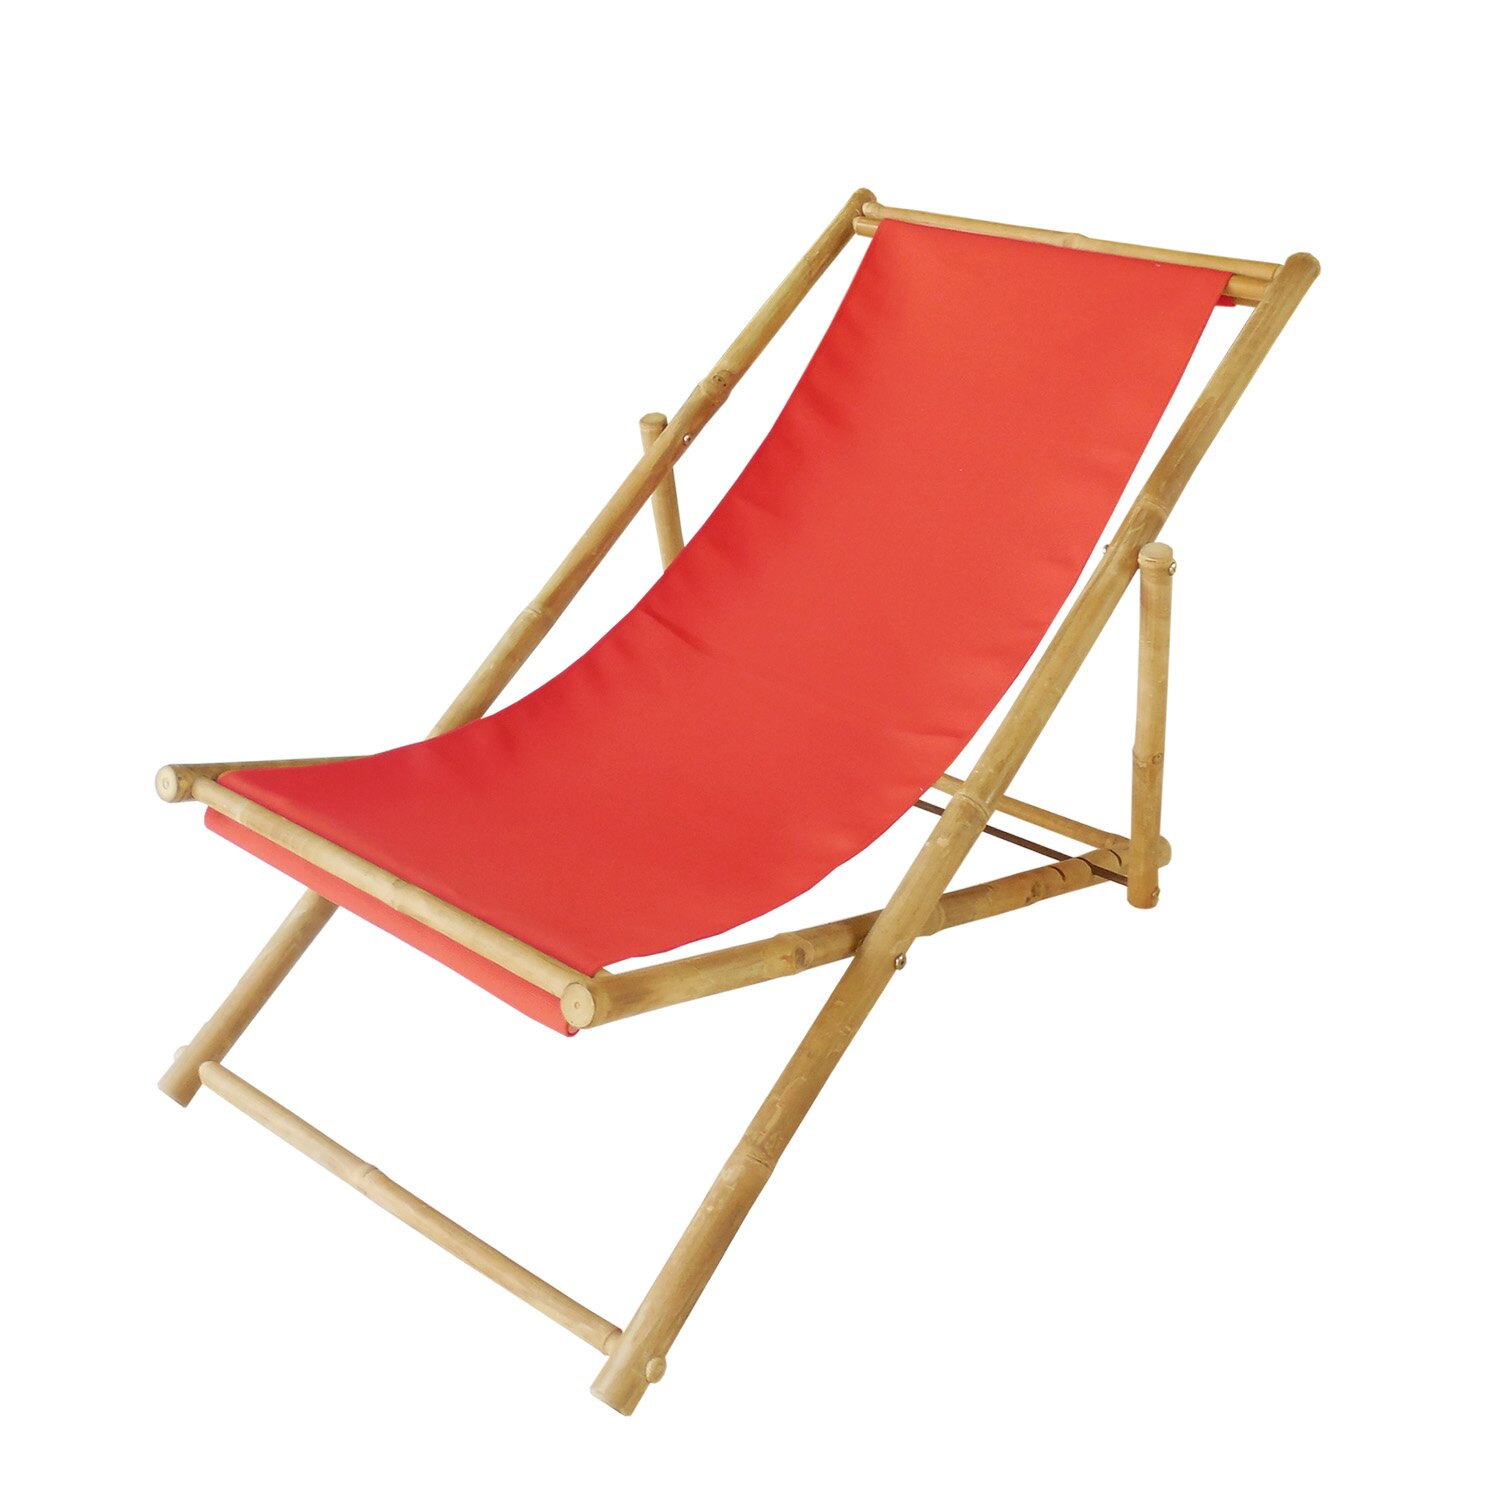 Zew Hand Crafted Bamboo Folding Sling Chair Reviews